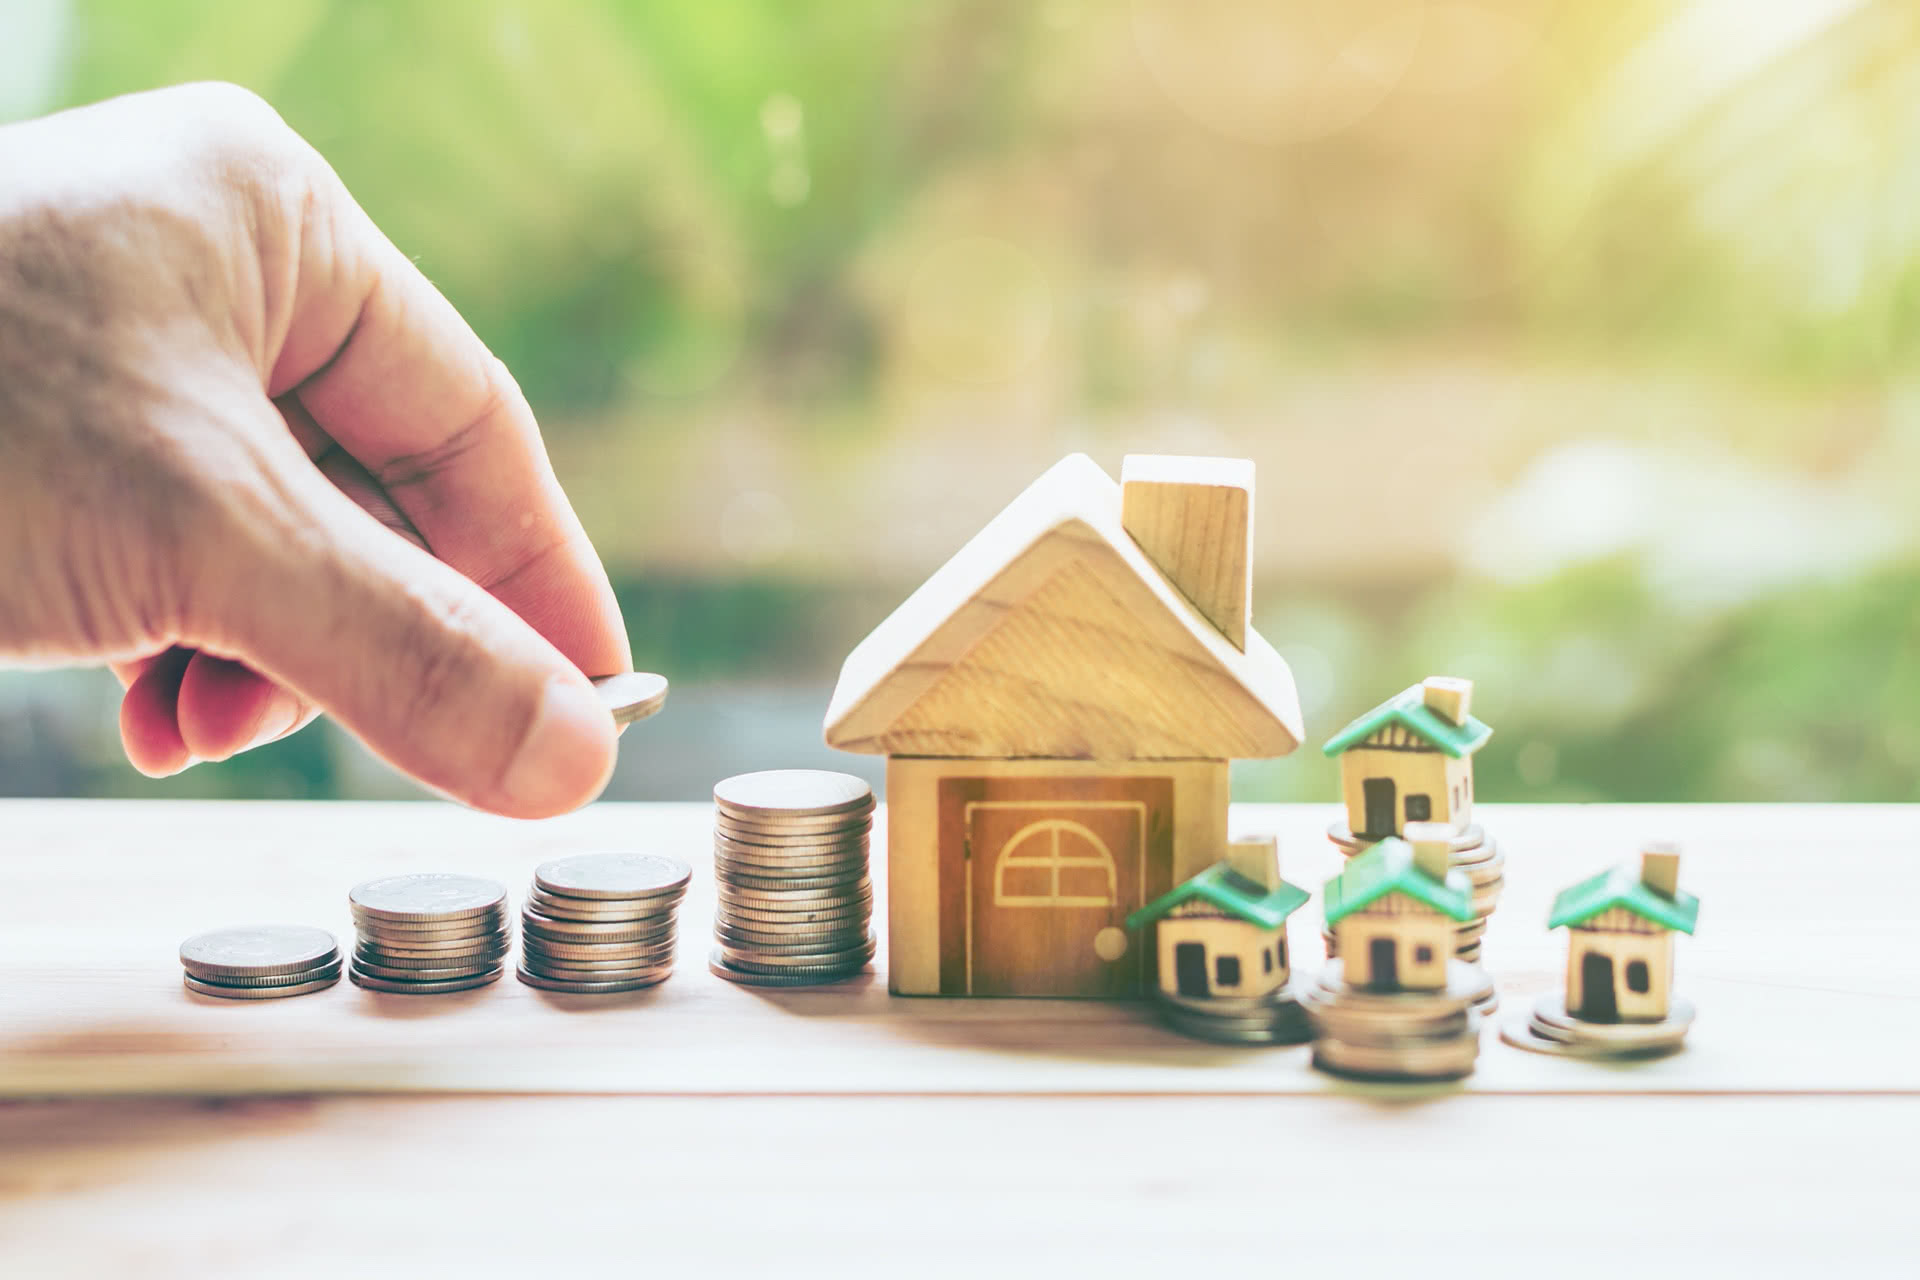 How Much Does a Home Security System Cost in 2020